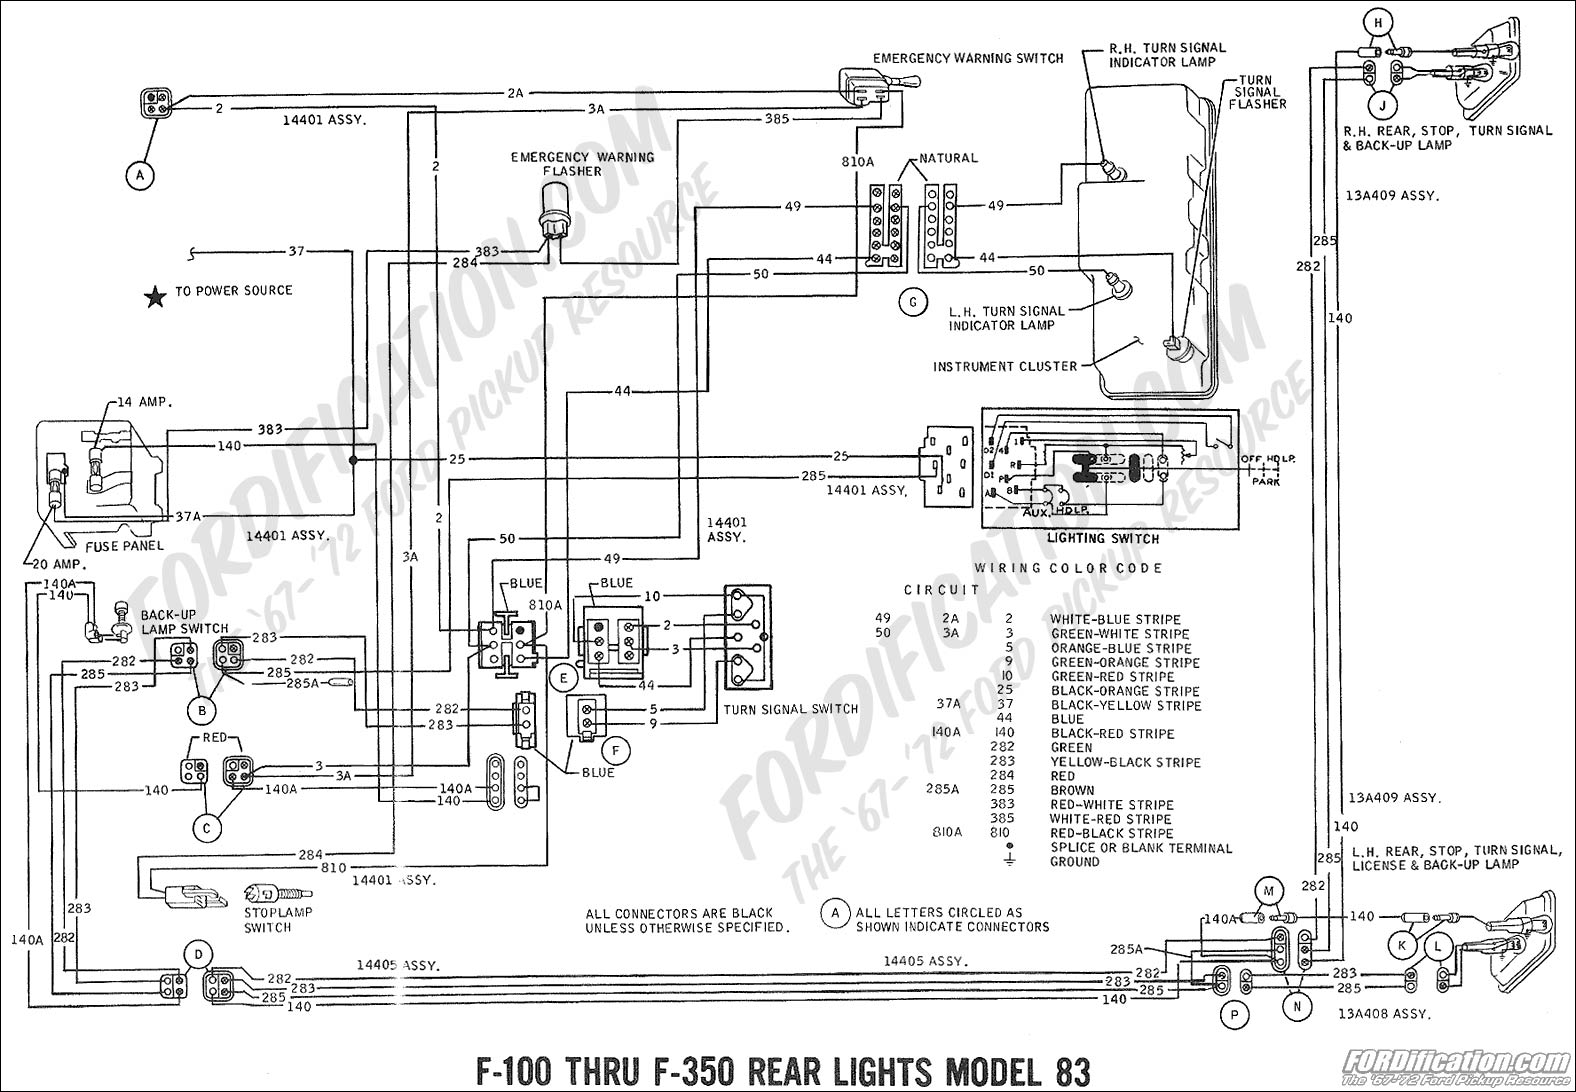 Ford truck technical drawings and schematics section h wiring 1969 f 100 f 250 rear lights model 83 02 sciox Gallery